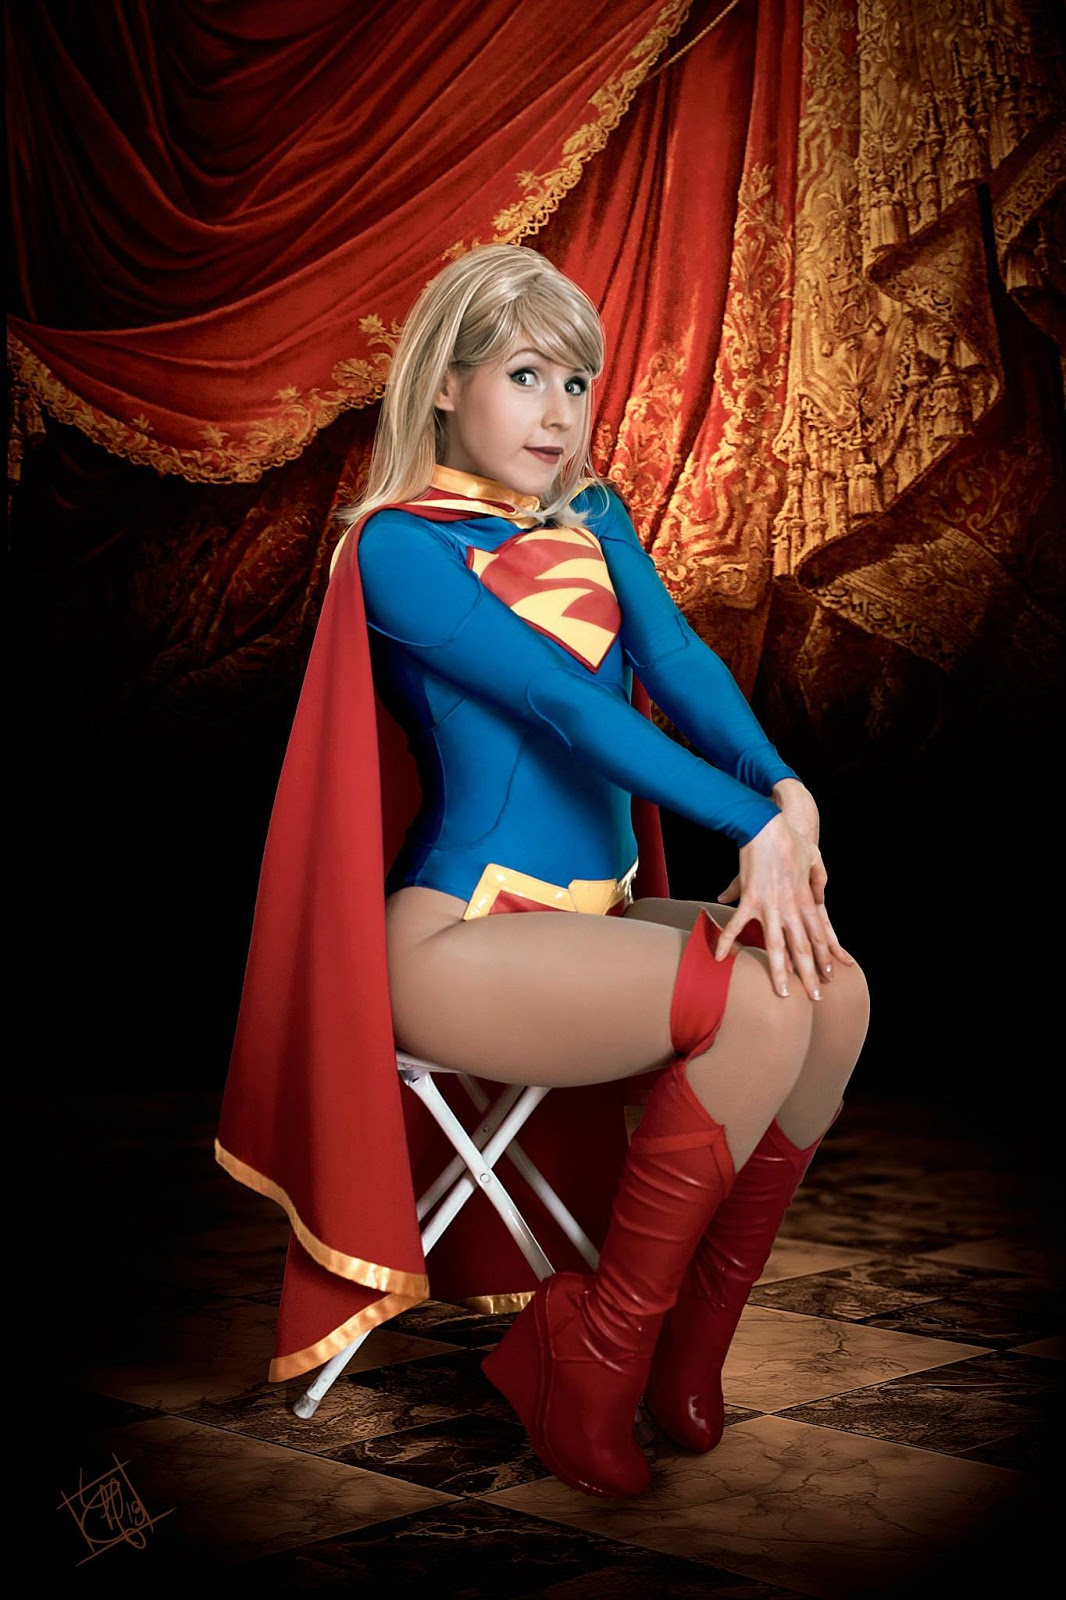 Pity, that Sexy cosplay supergirl hot